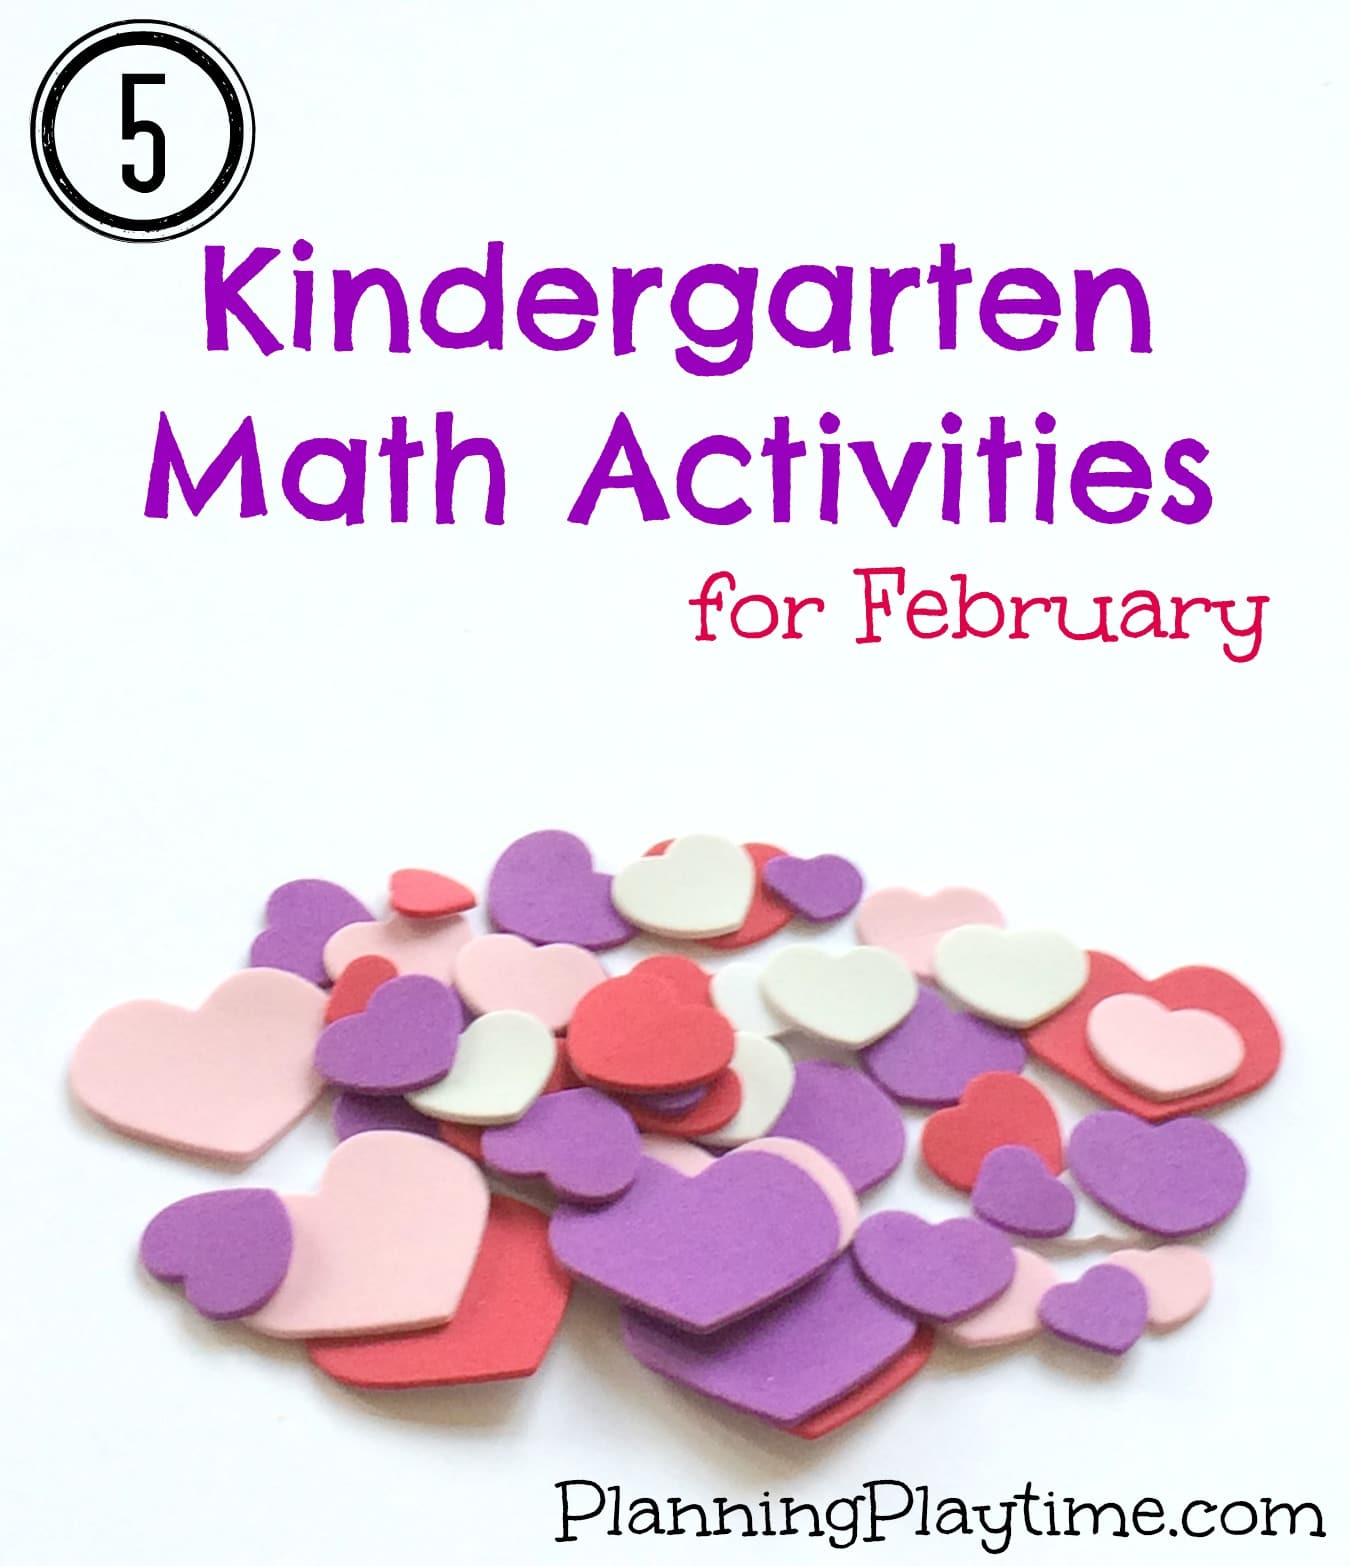 Kindergarten Math Activities for February - Planning Playtime